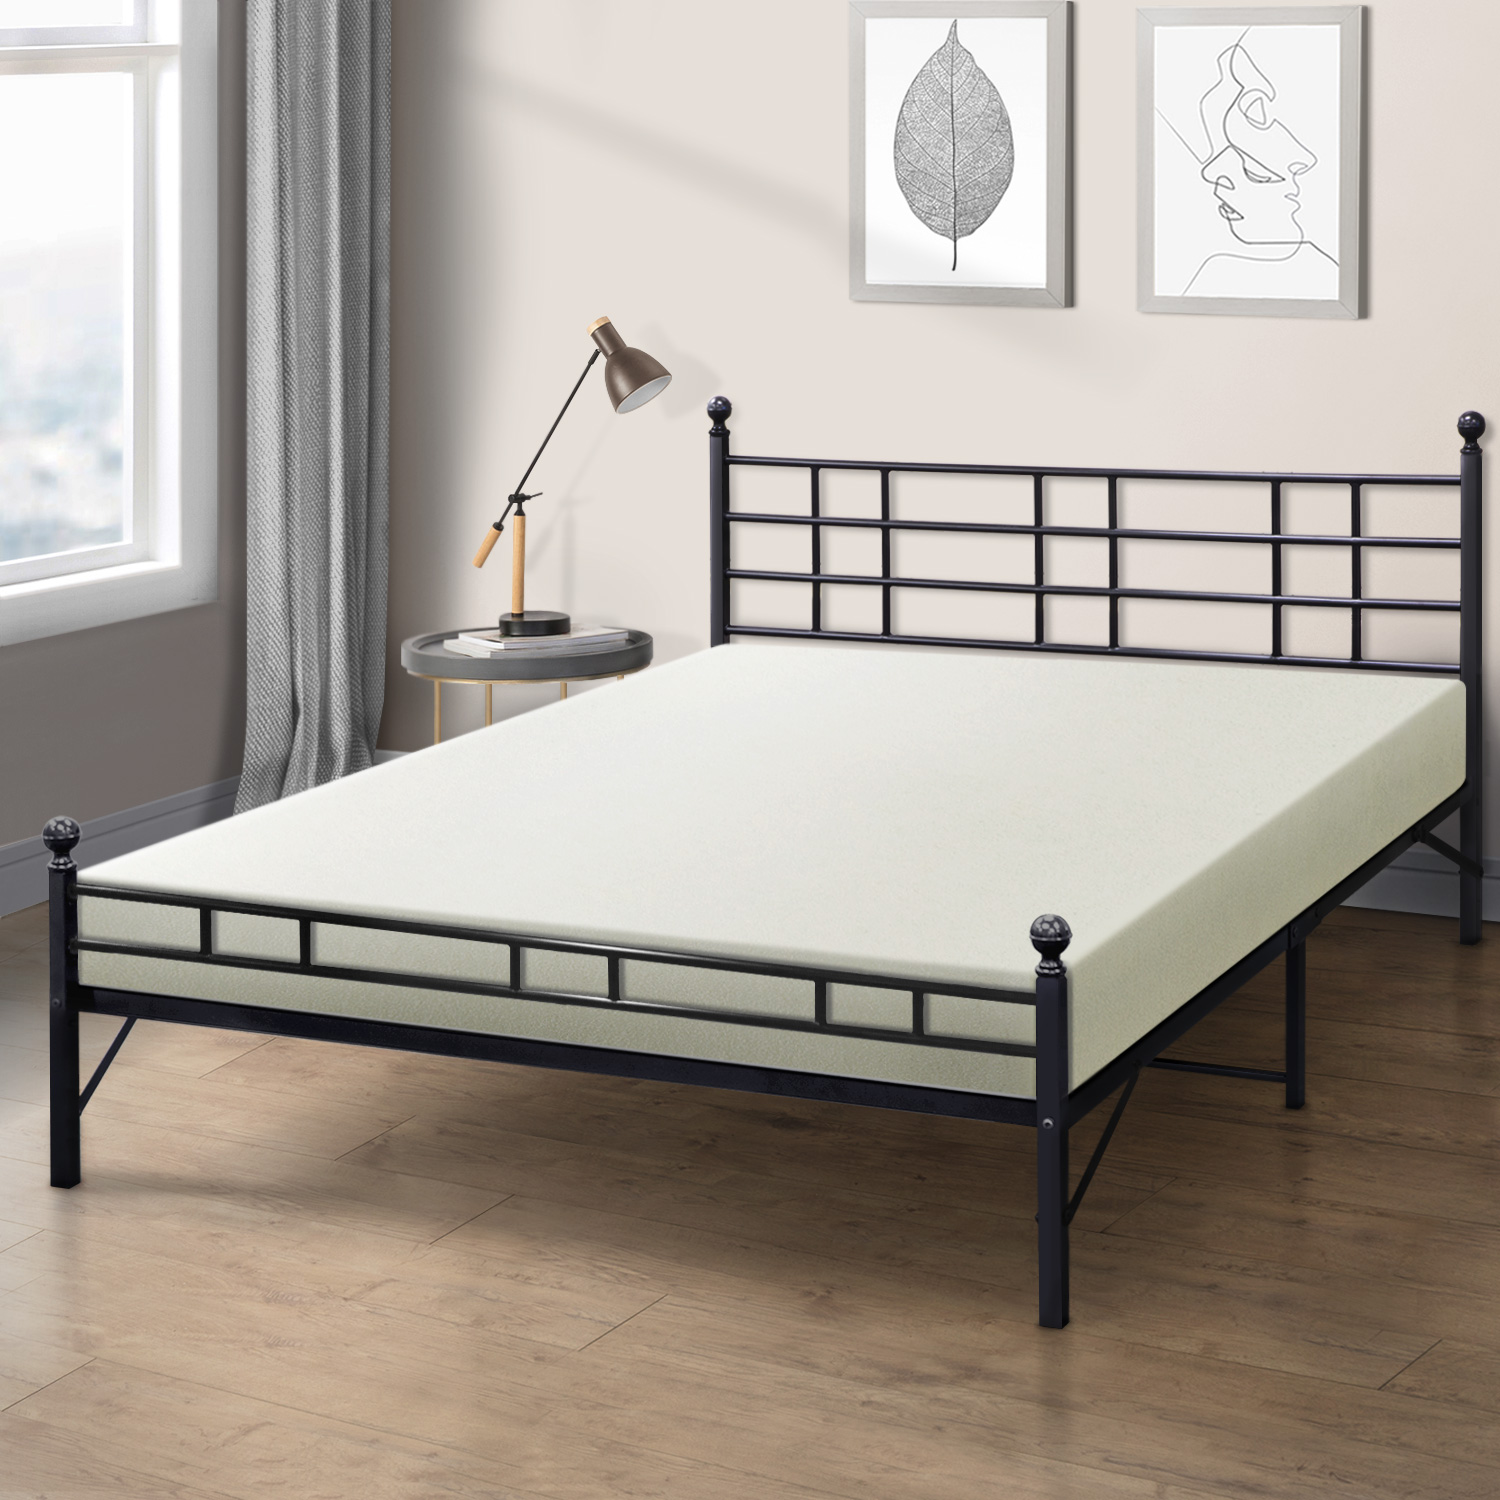 Best Price Mattress 6 Inch Memory Foam Mattress and Easy Set-Up Steel Bed Frame Set, Multiple Sizes